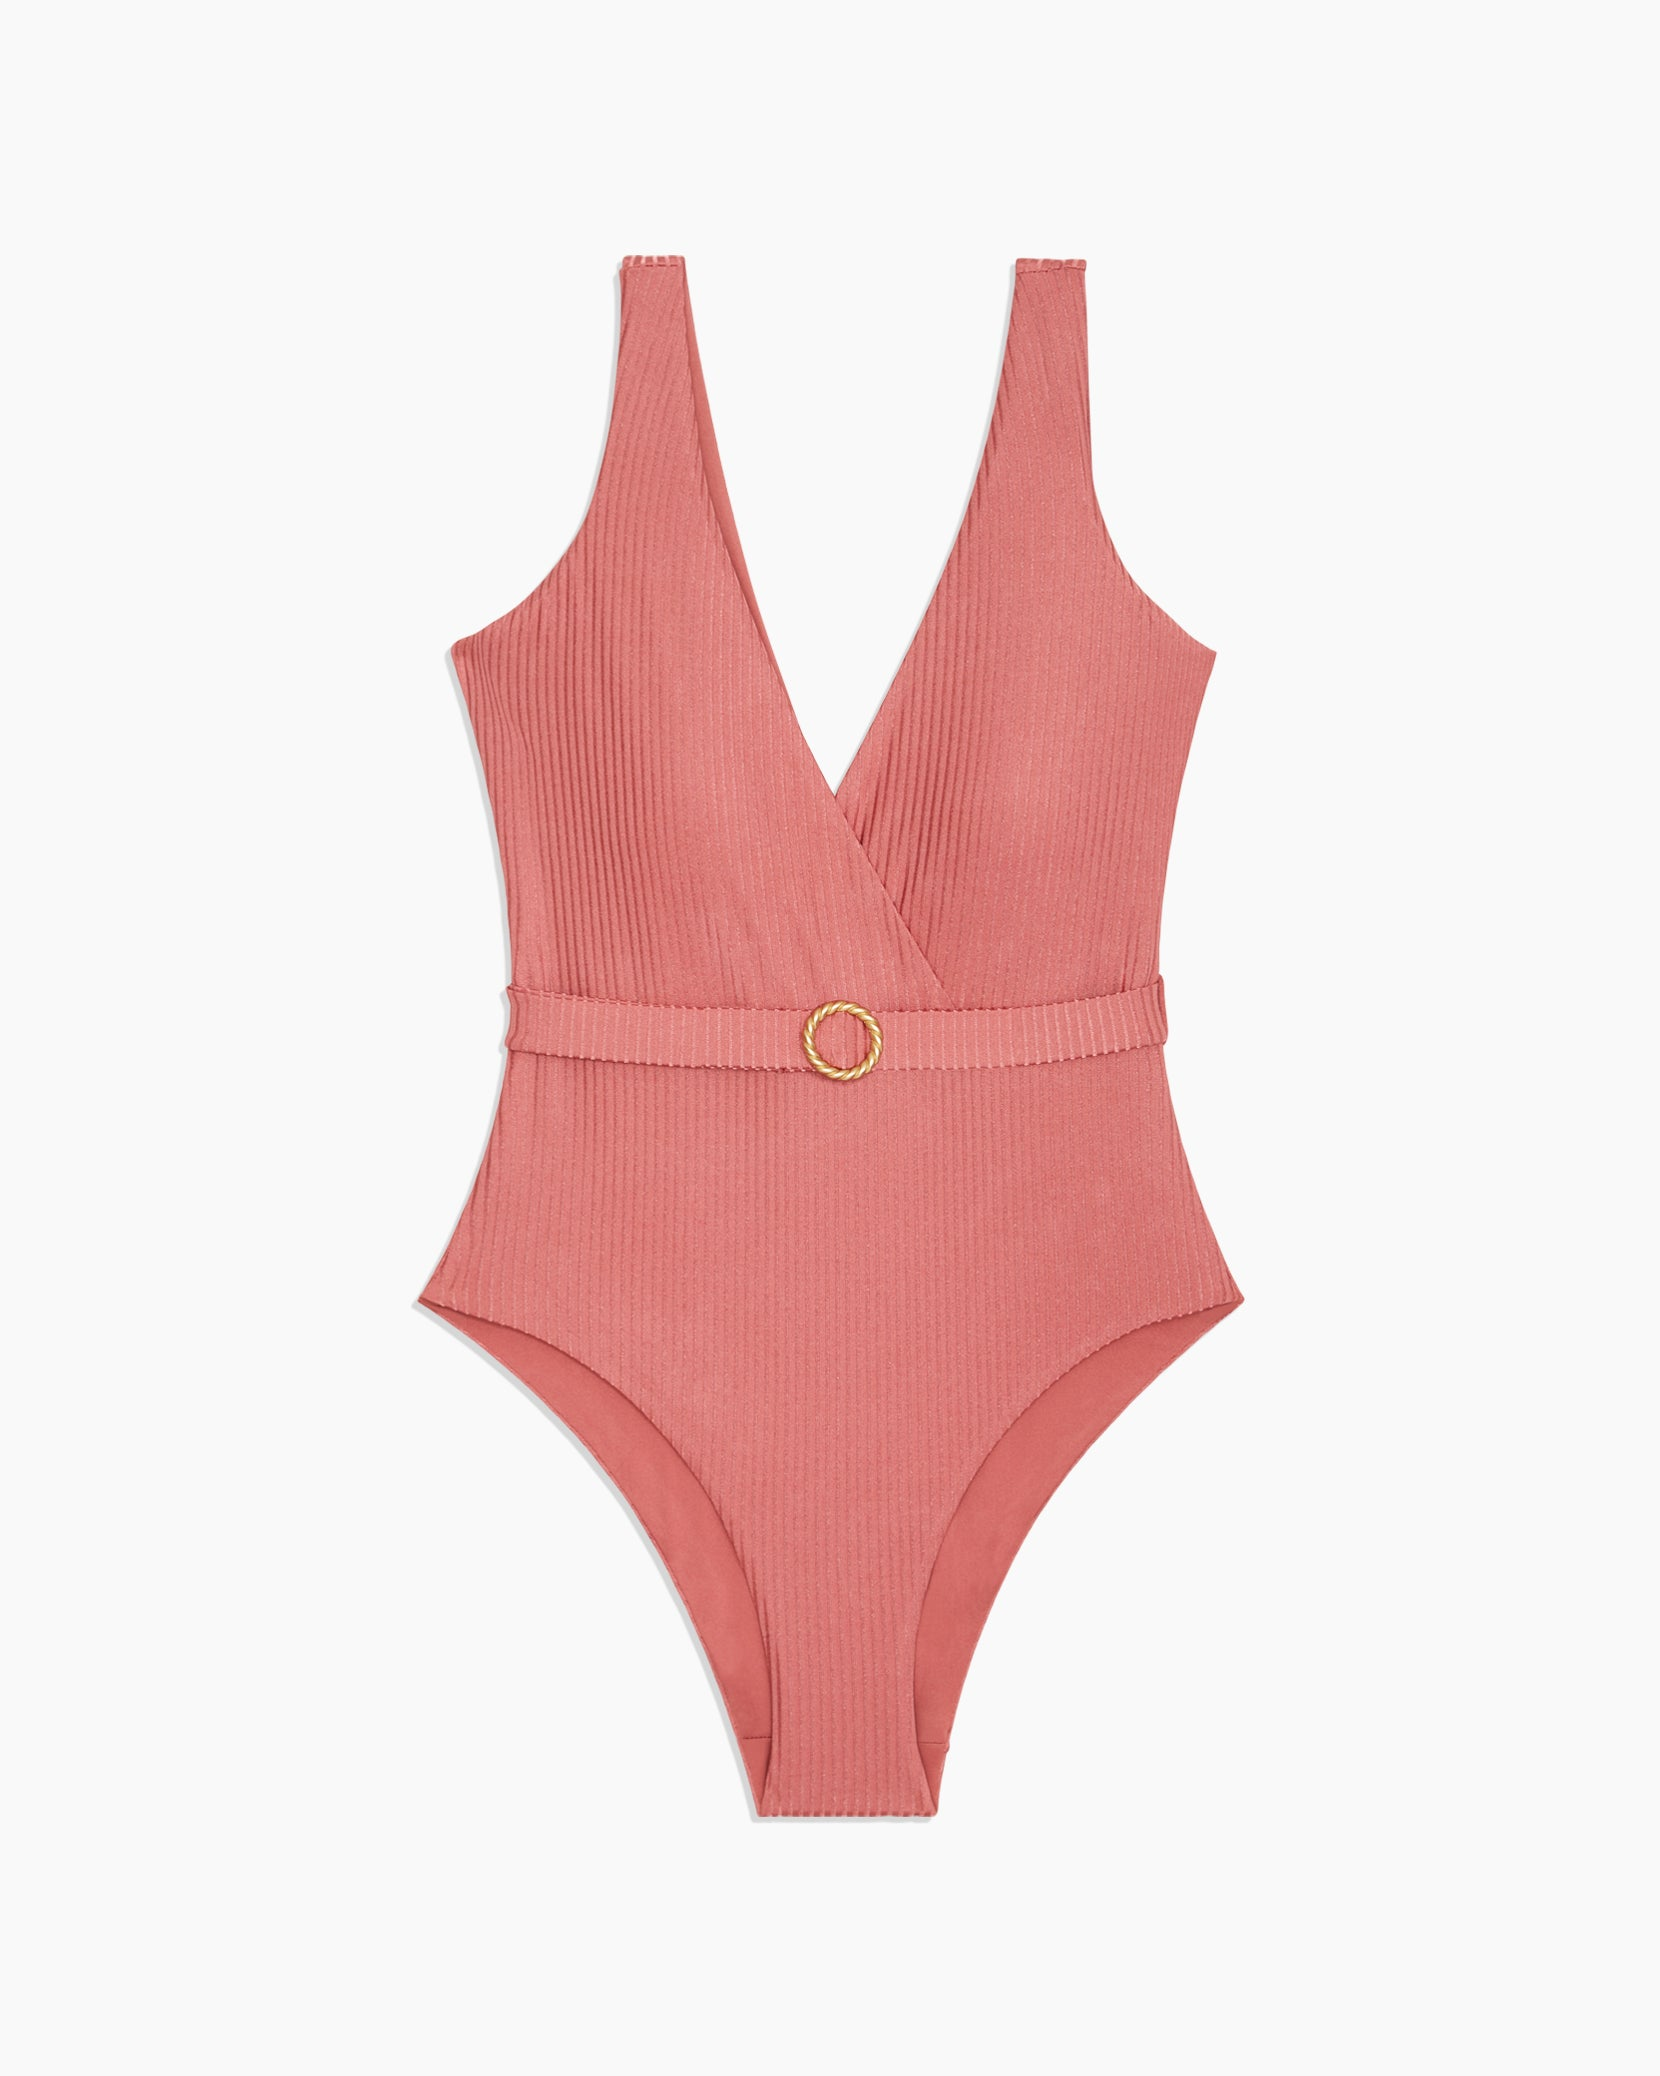 Michelle Shimmer Rib One Piece in Dusty Rose - 6 - Onia